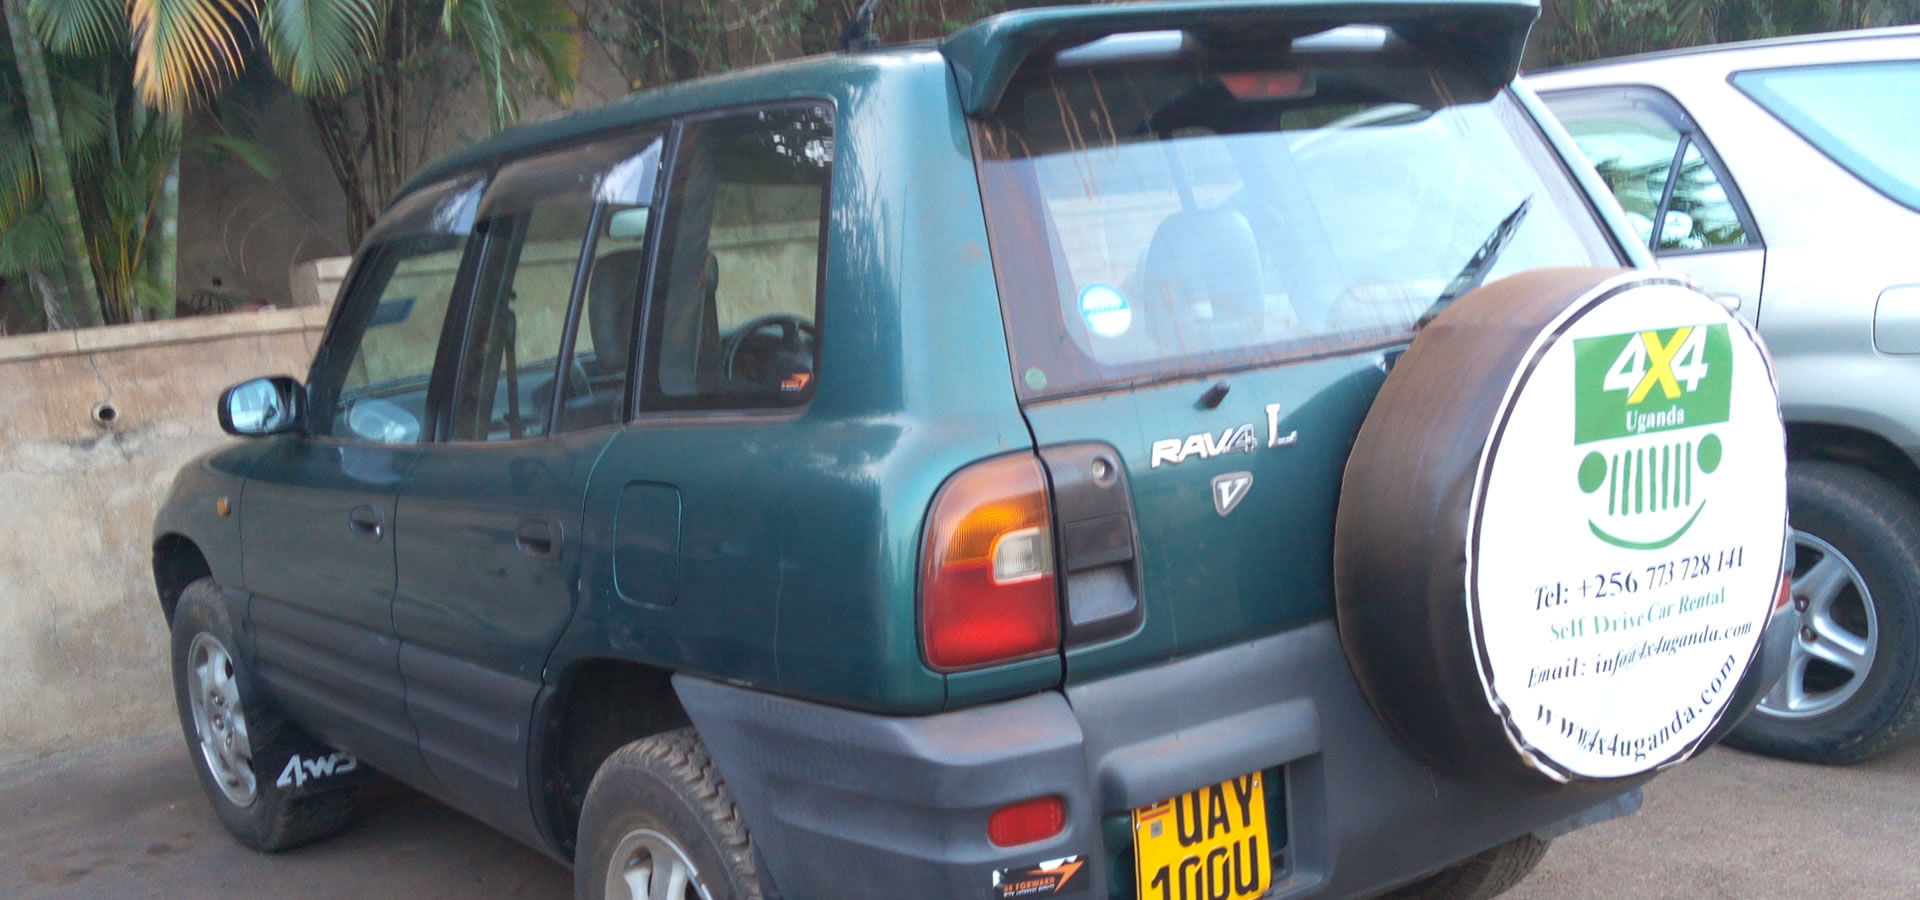 4X4 Rav4 for Hire in Uganda